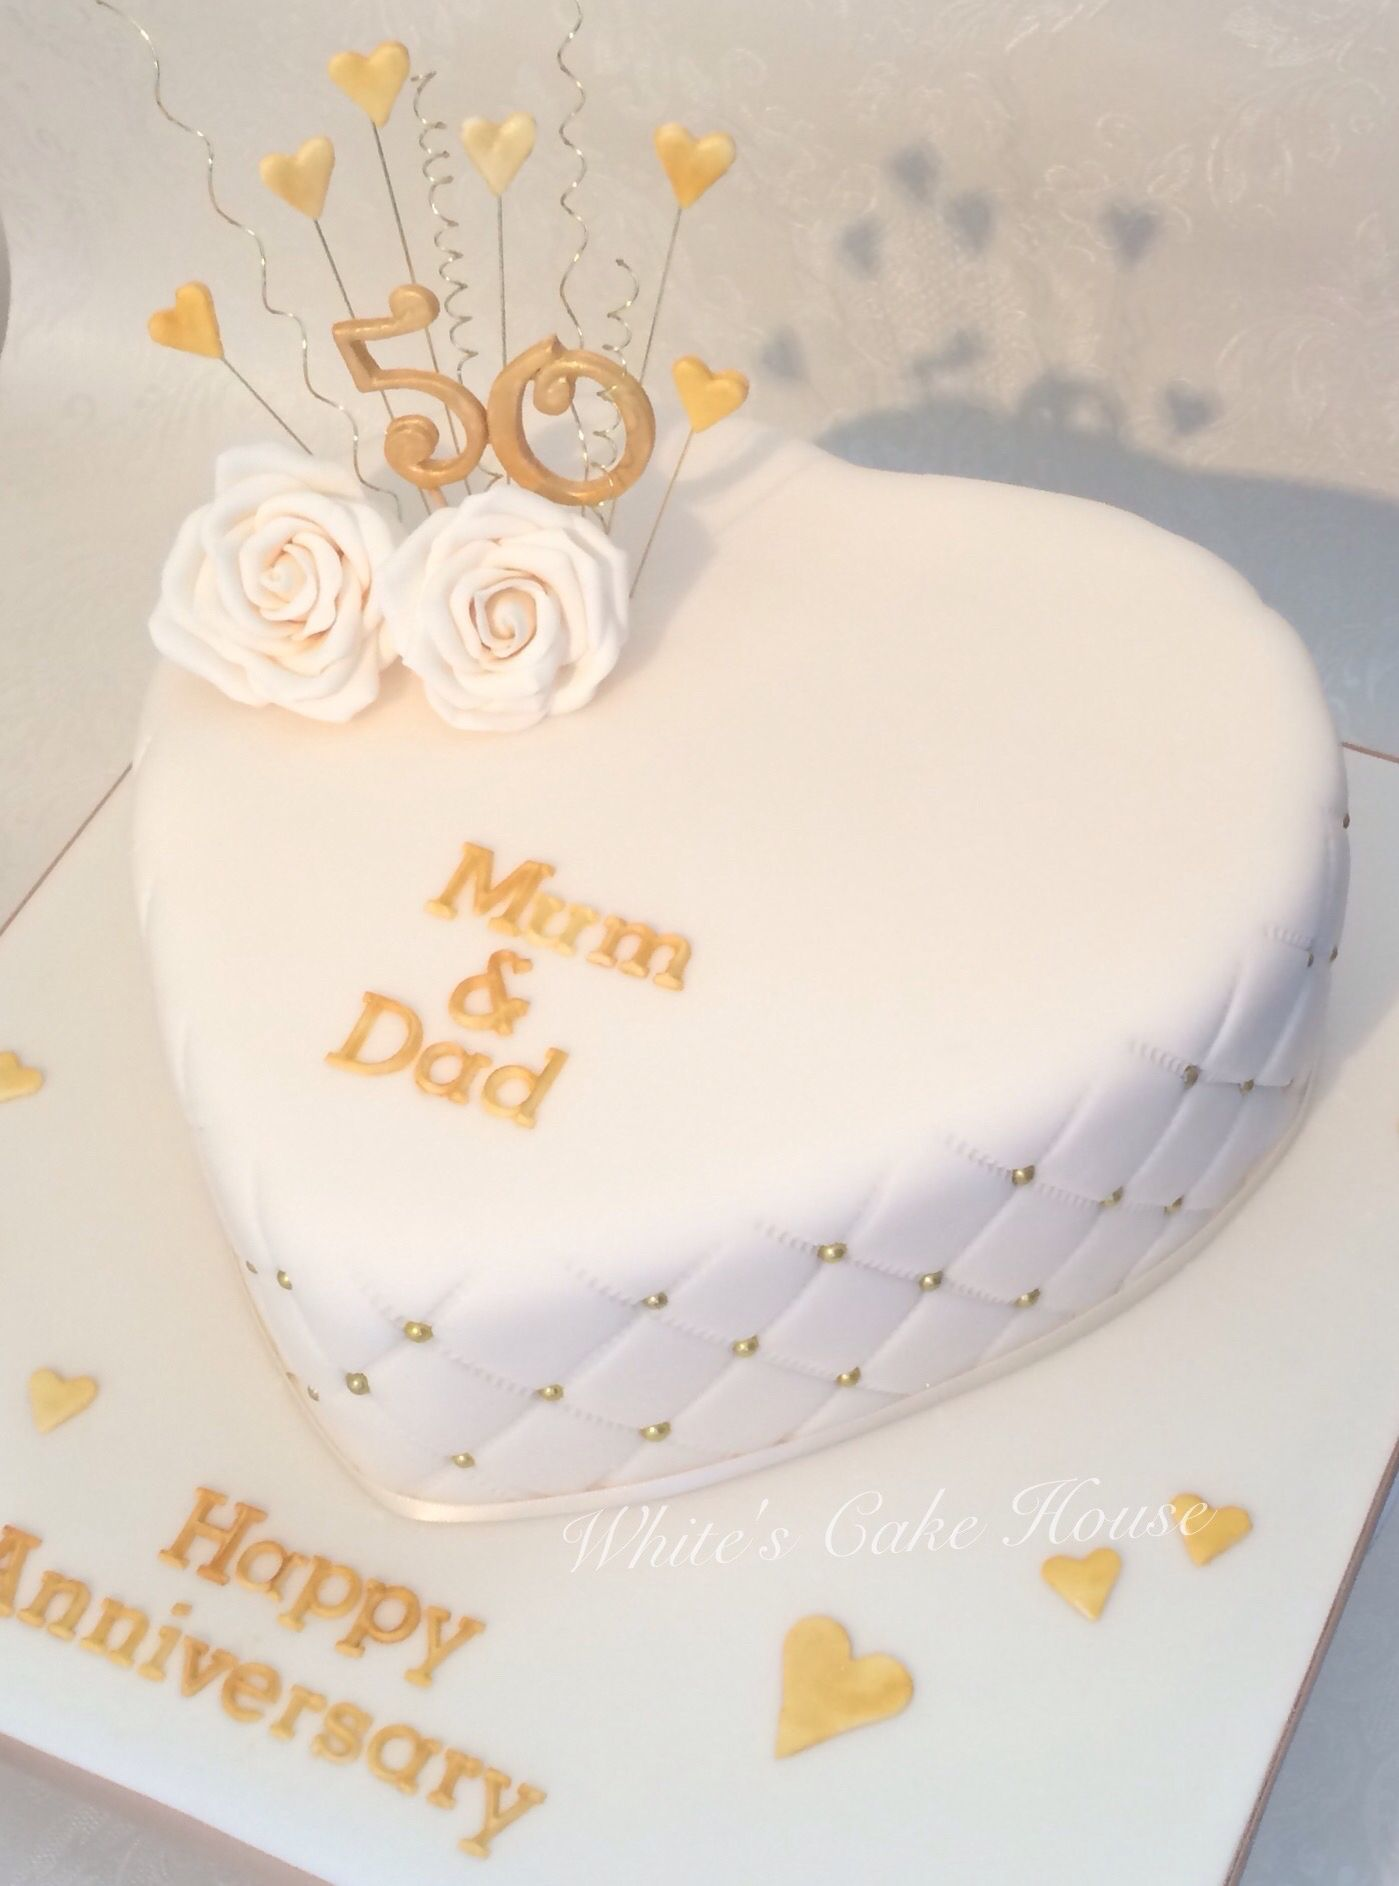 Heart Shaped Golden Anniversary Cake Weddings Wedding